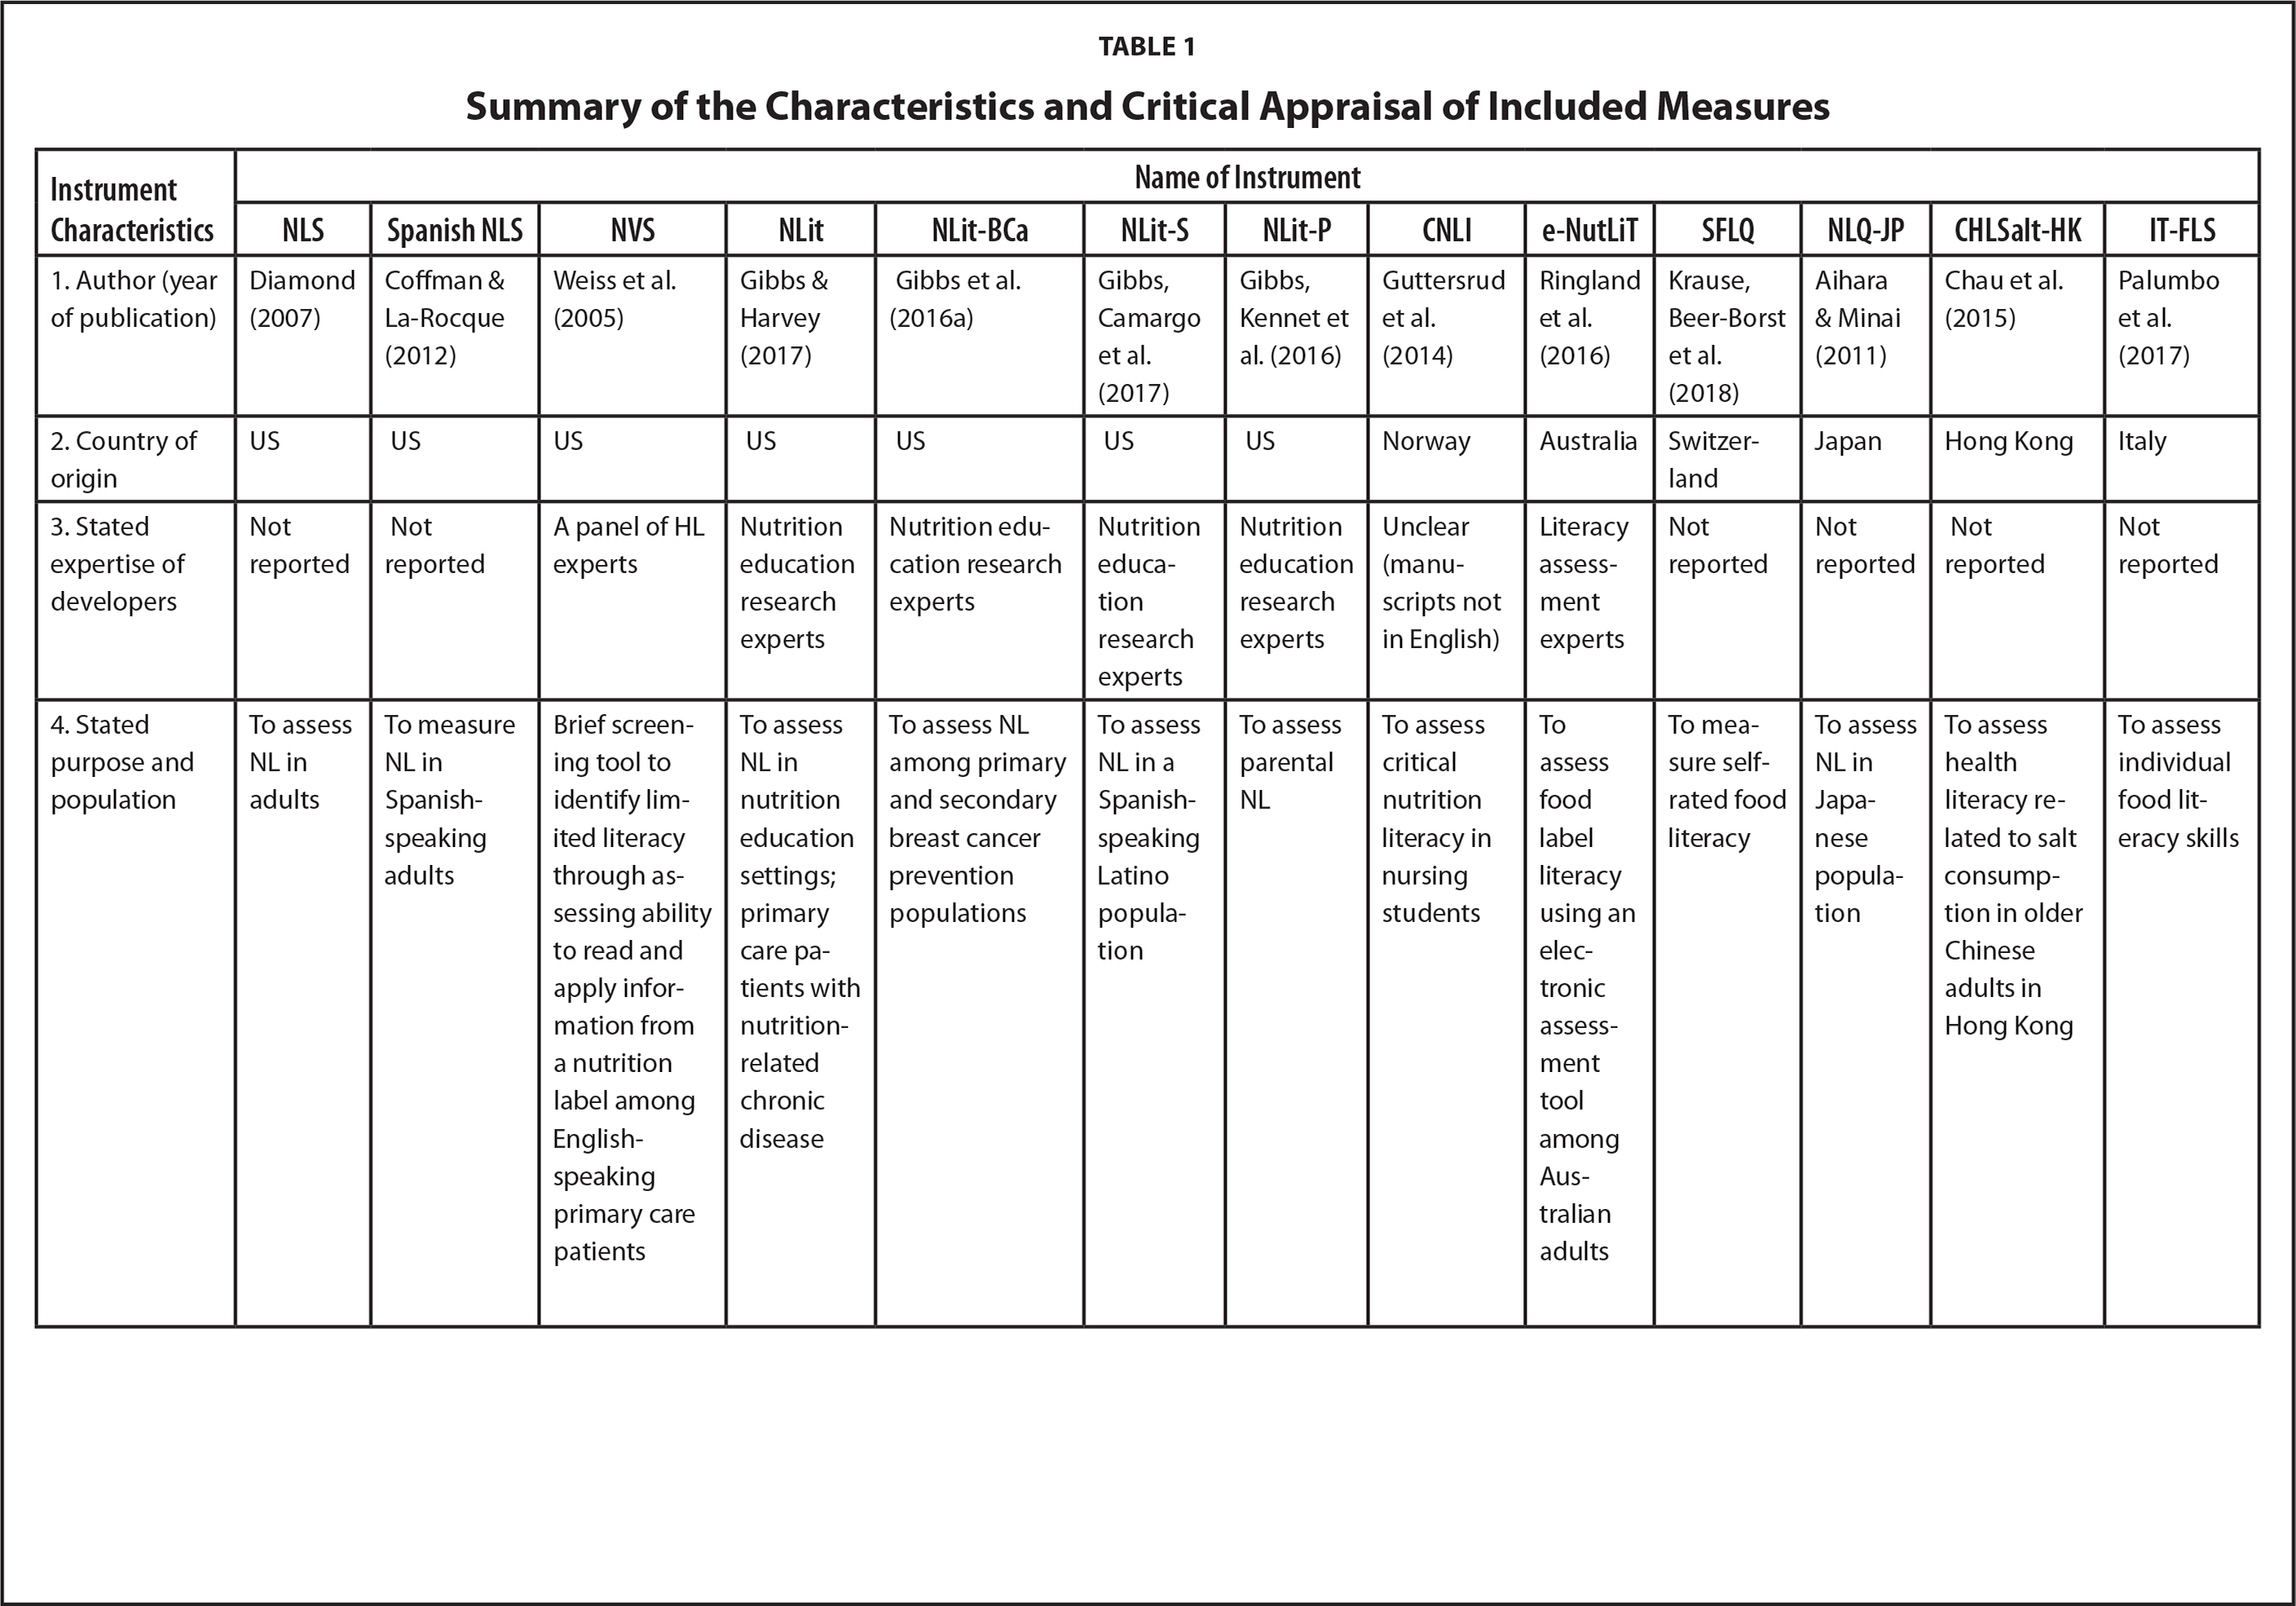 Summary of the Characteristics and Critical Appraisal of Included Measures